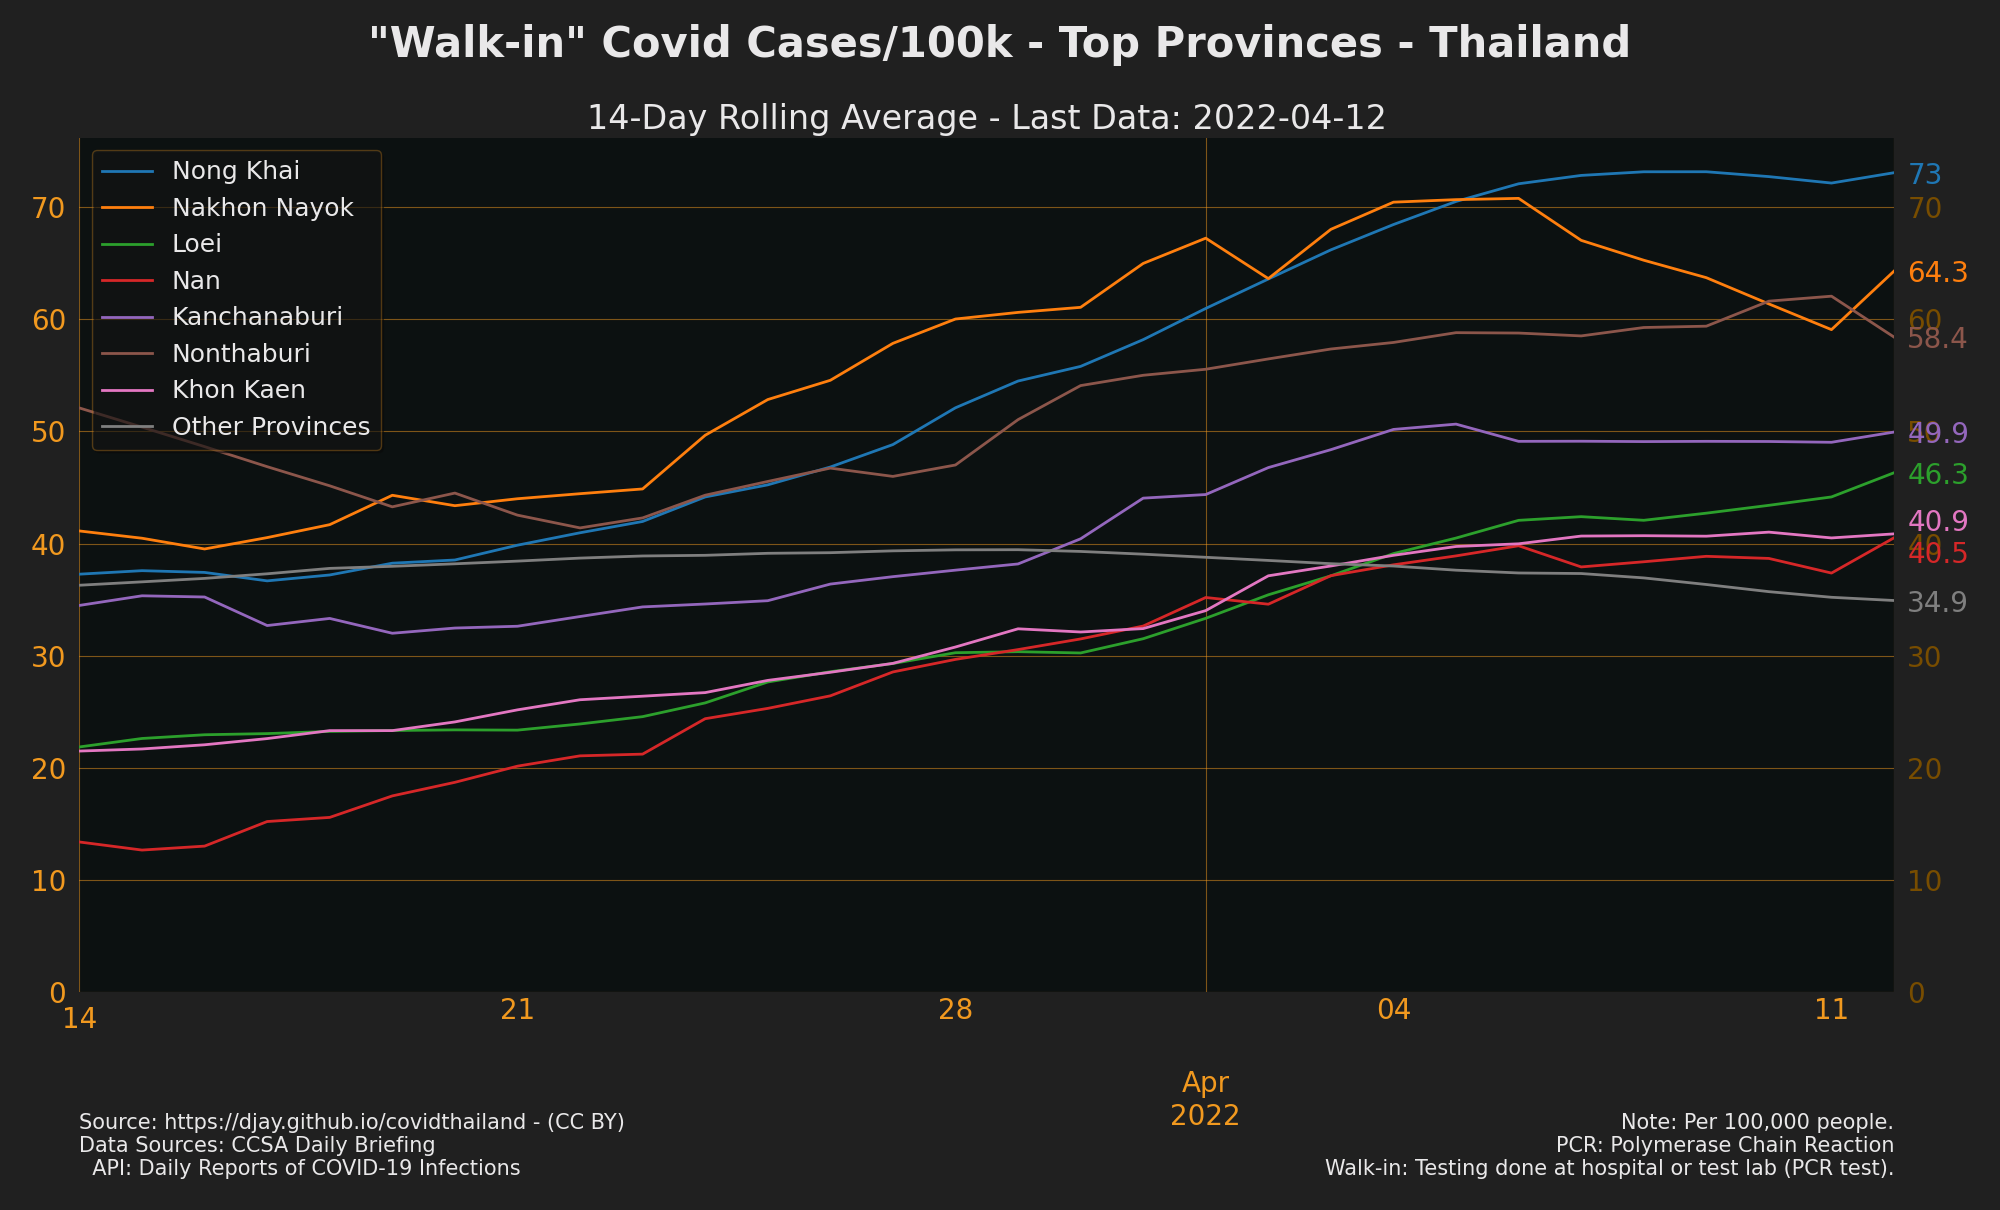 Provinces with Most Walkin Cases